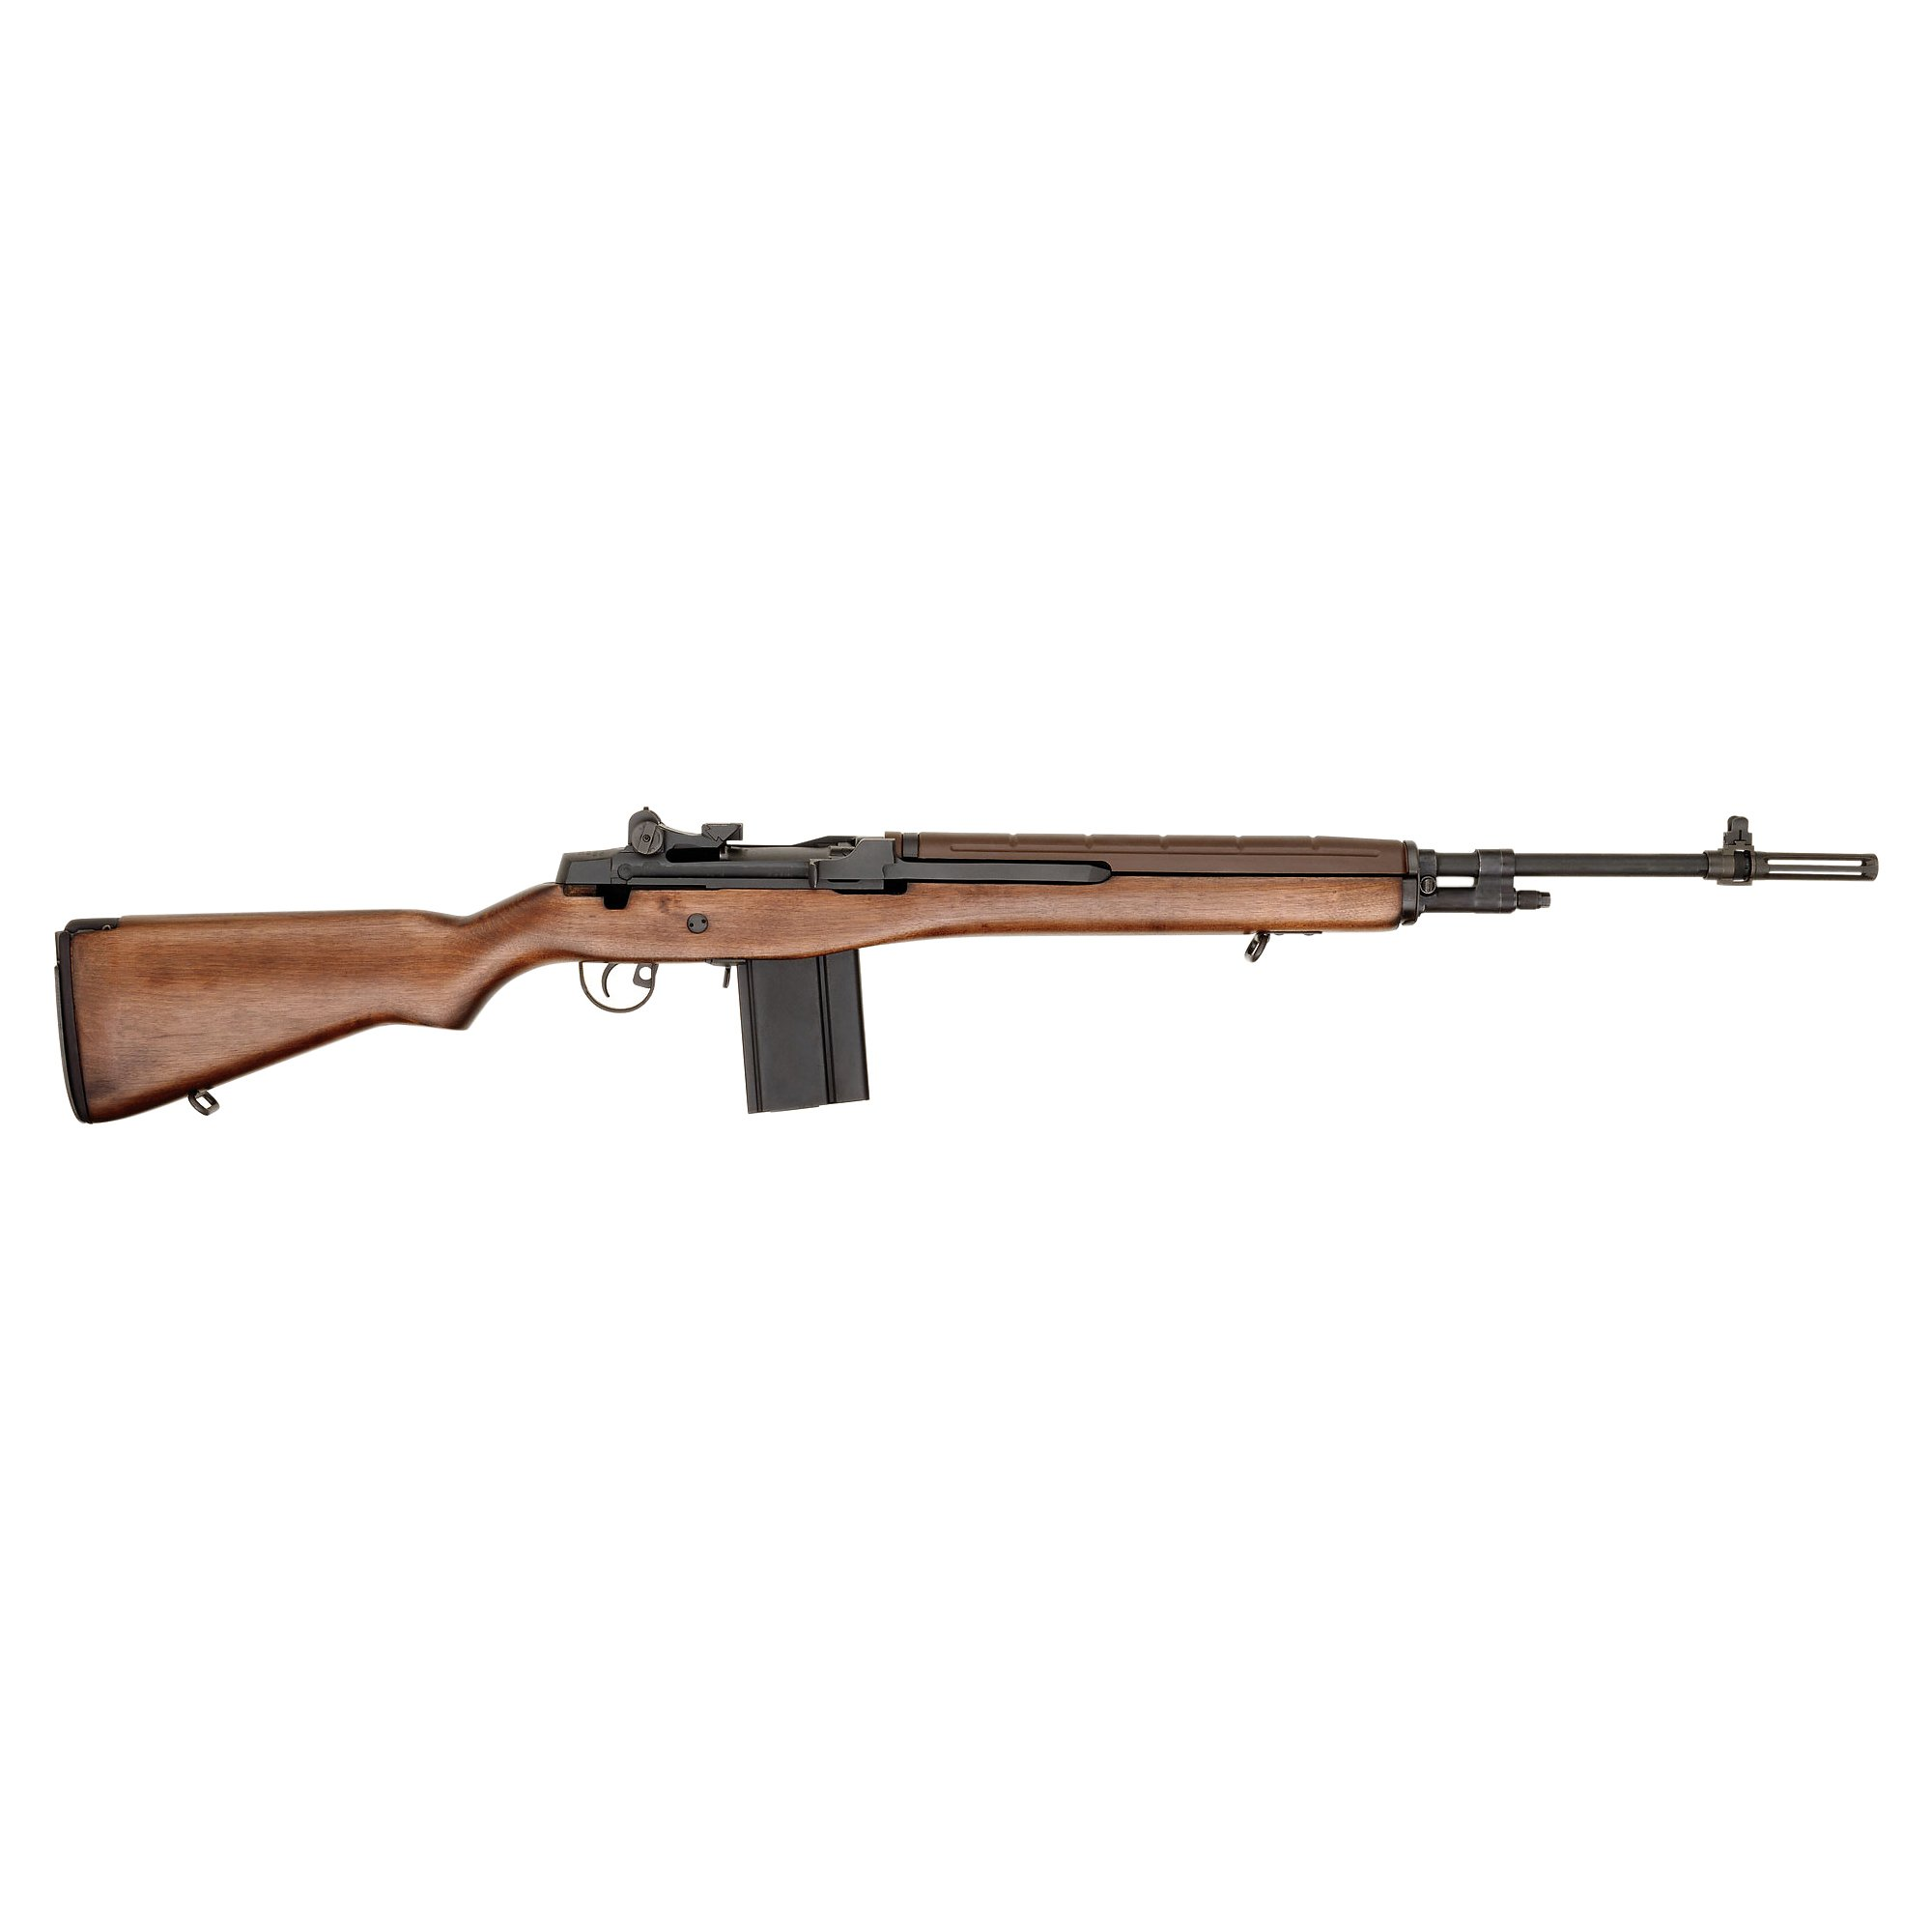 Springfield Armoy M1A Standard Centerfire Rifle